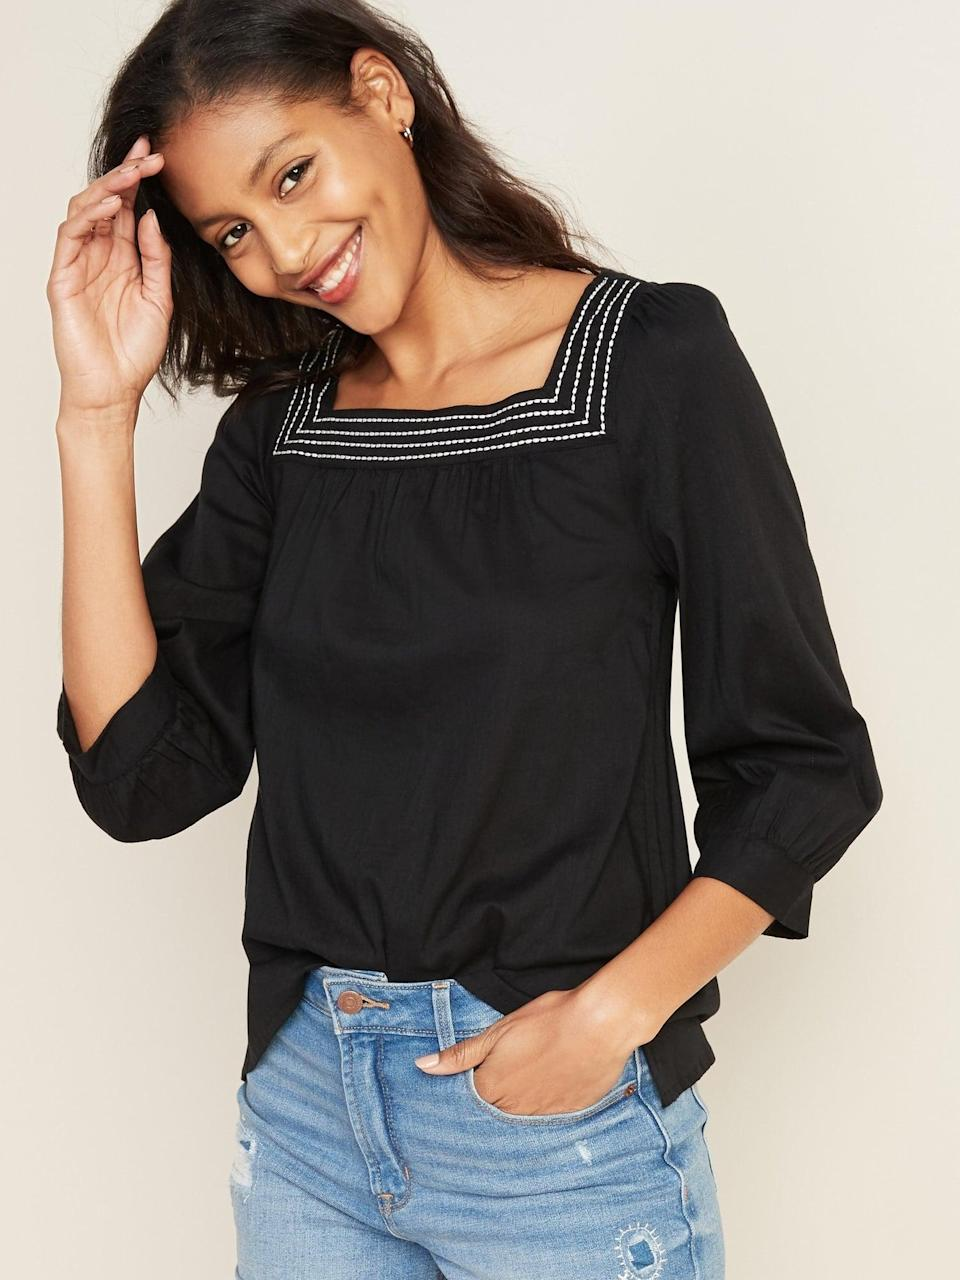 <p>Bring back the vintage boho vibes with this <span>Relaxed Square-Neck Top</span> ($30, originally $35).</p>